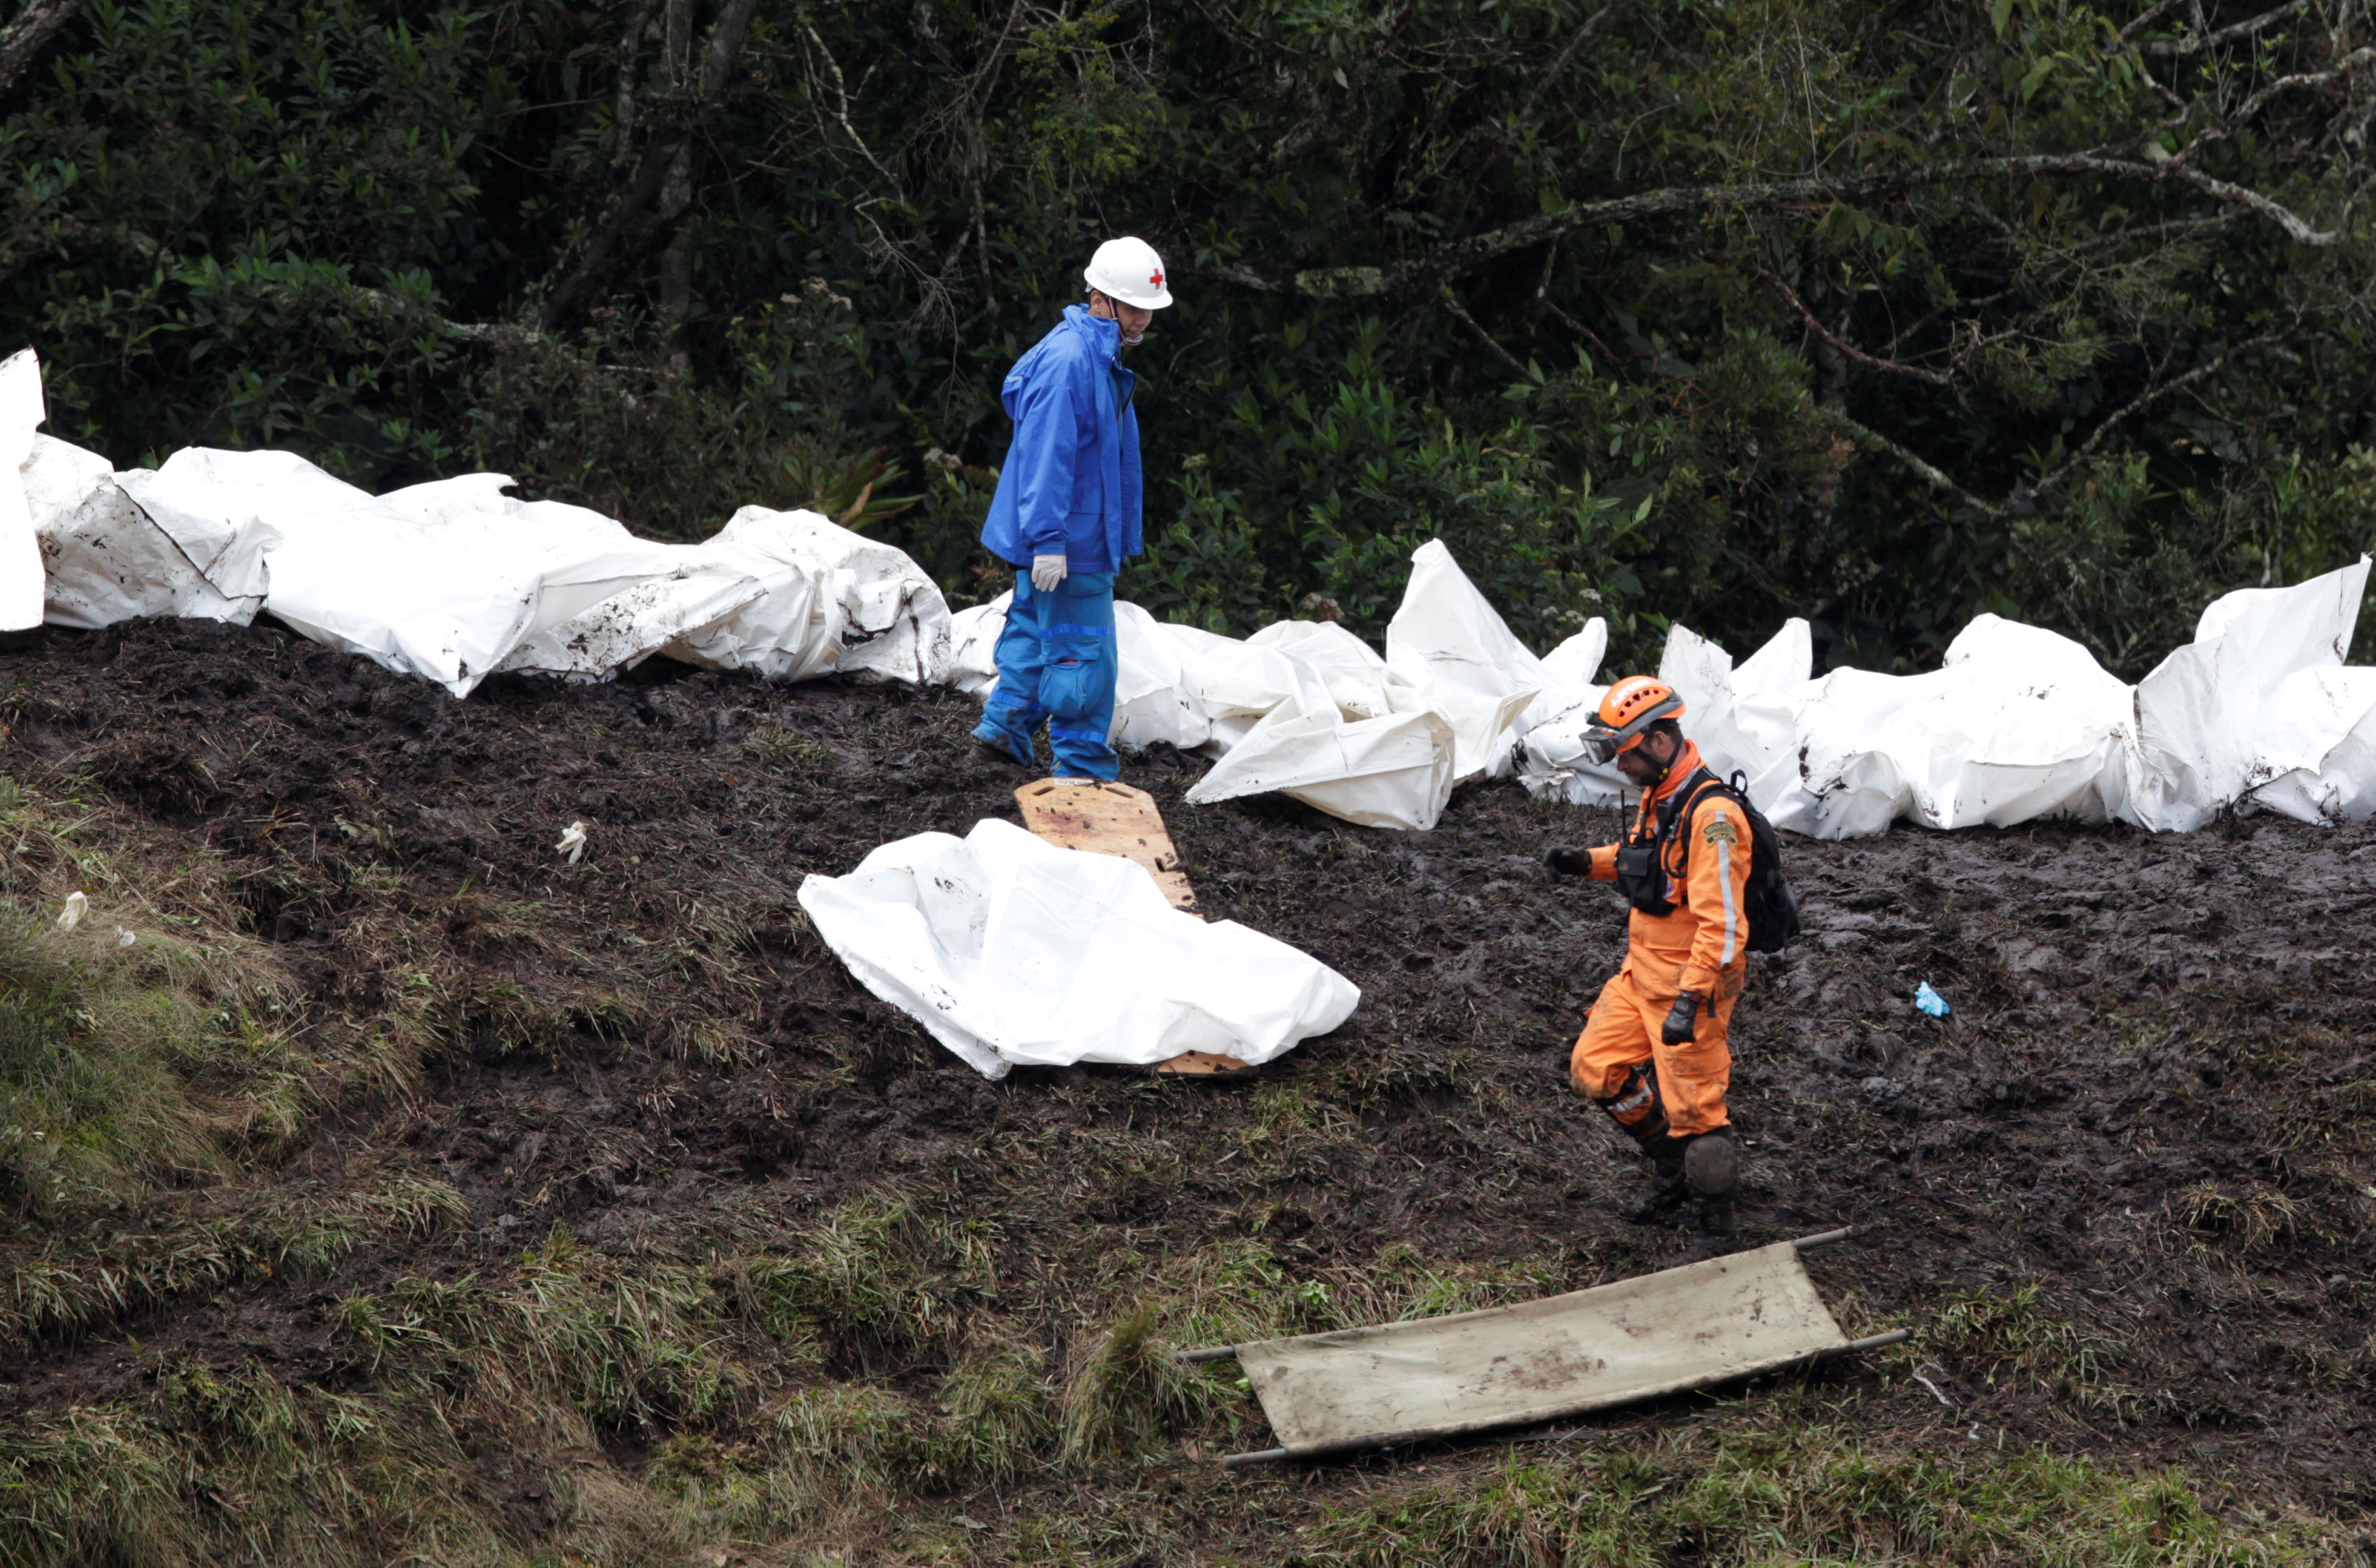 Rescue workers walk next to bodies of victims from the wreckage of a plane that crashed into the Colombian jungle with Brazilian soccer team Chapecoense onboard near Medellin, Colombia, November 29, 2016.  REUTERS/Jaime Saldarriaga